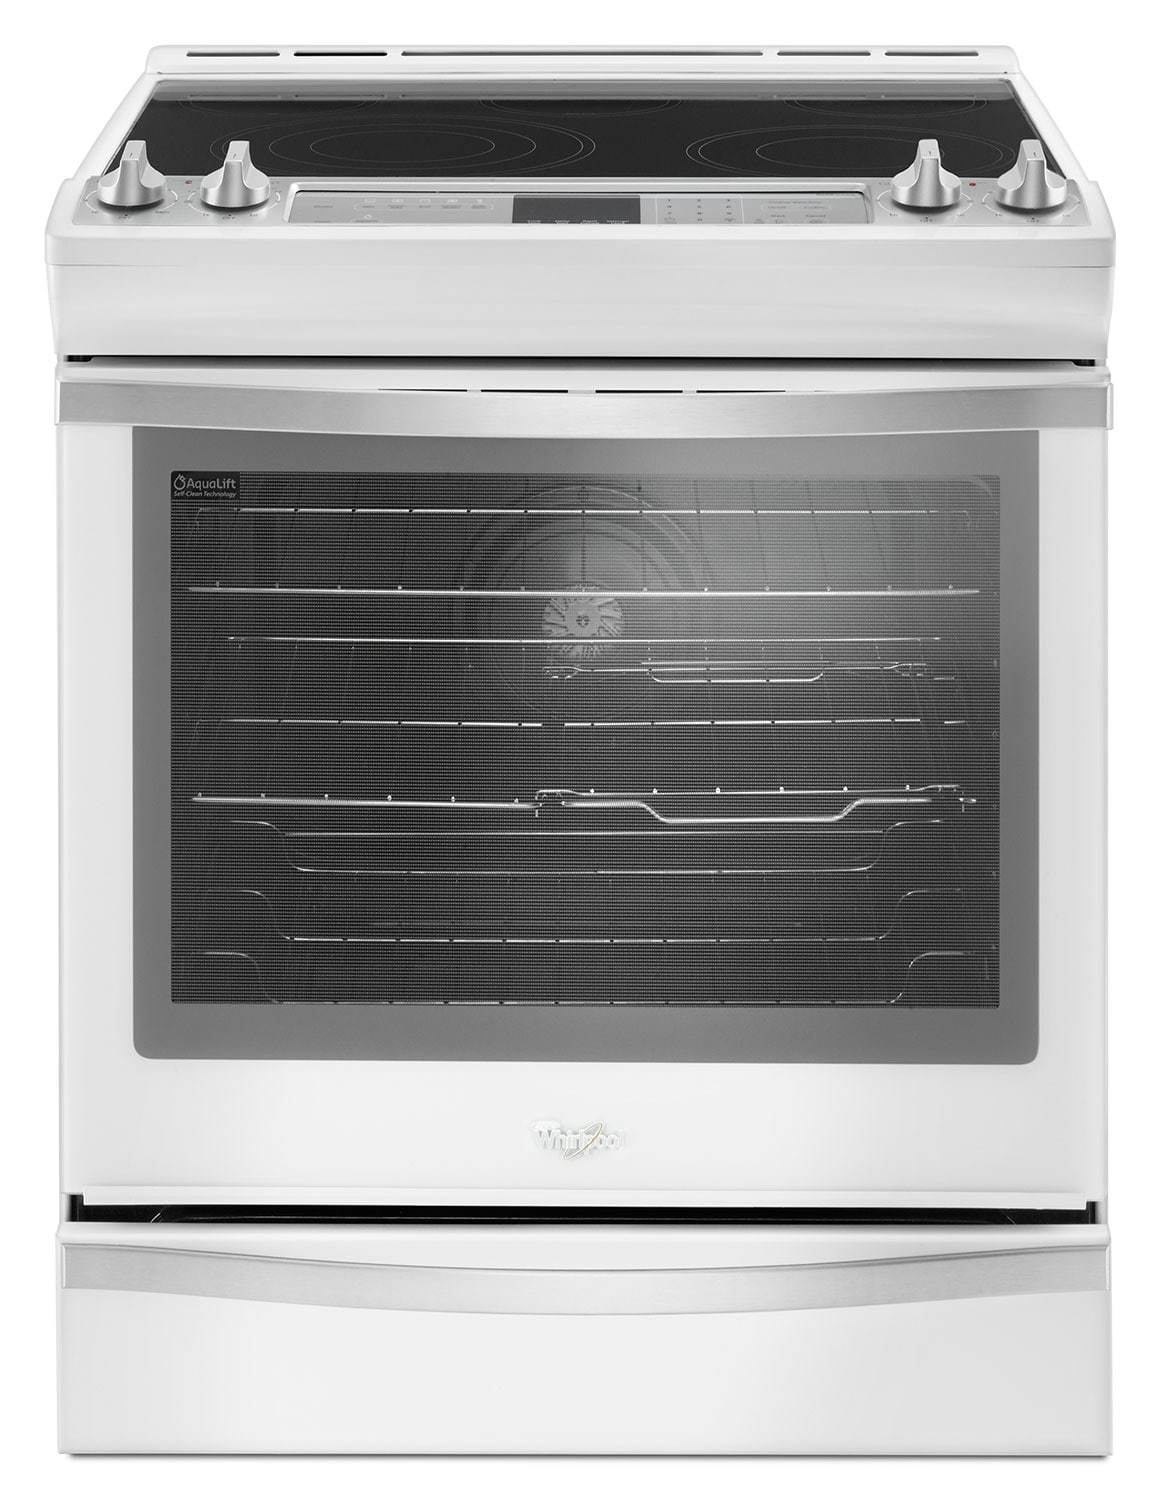 Cooking Products - Whirlpool White Slide-In Electric Range (6.4 Cu. Ft.) - YWEE745H0FH